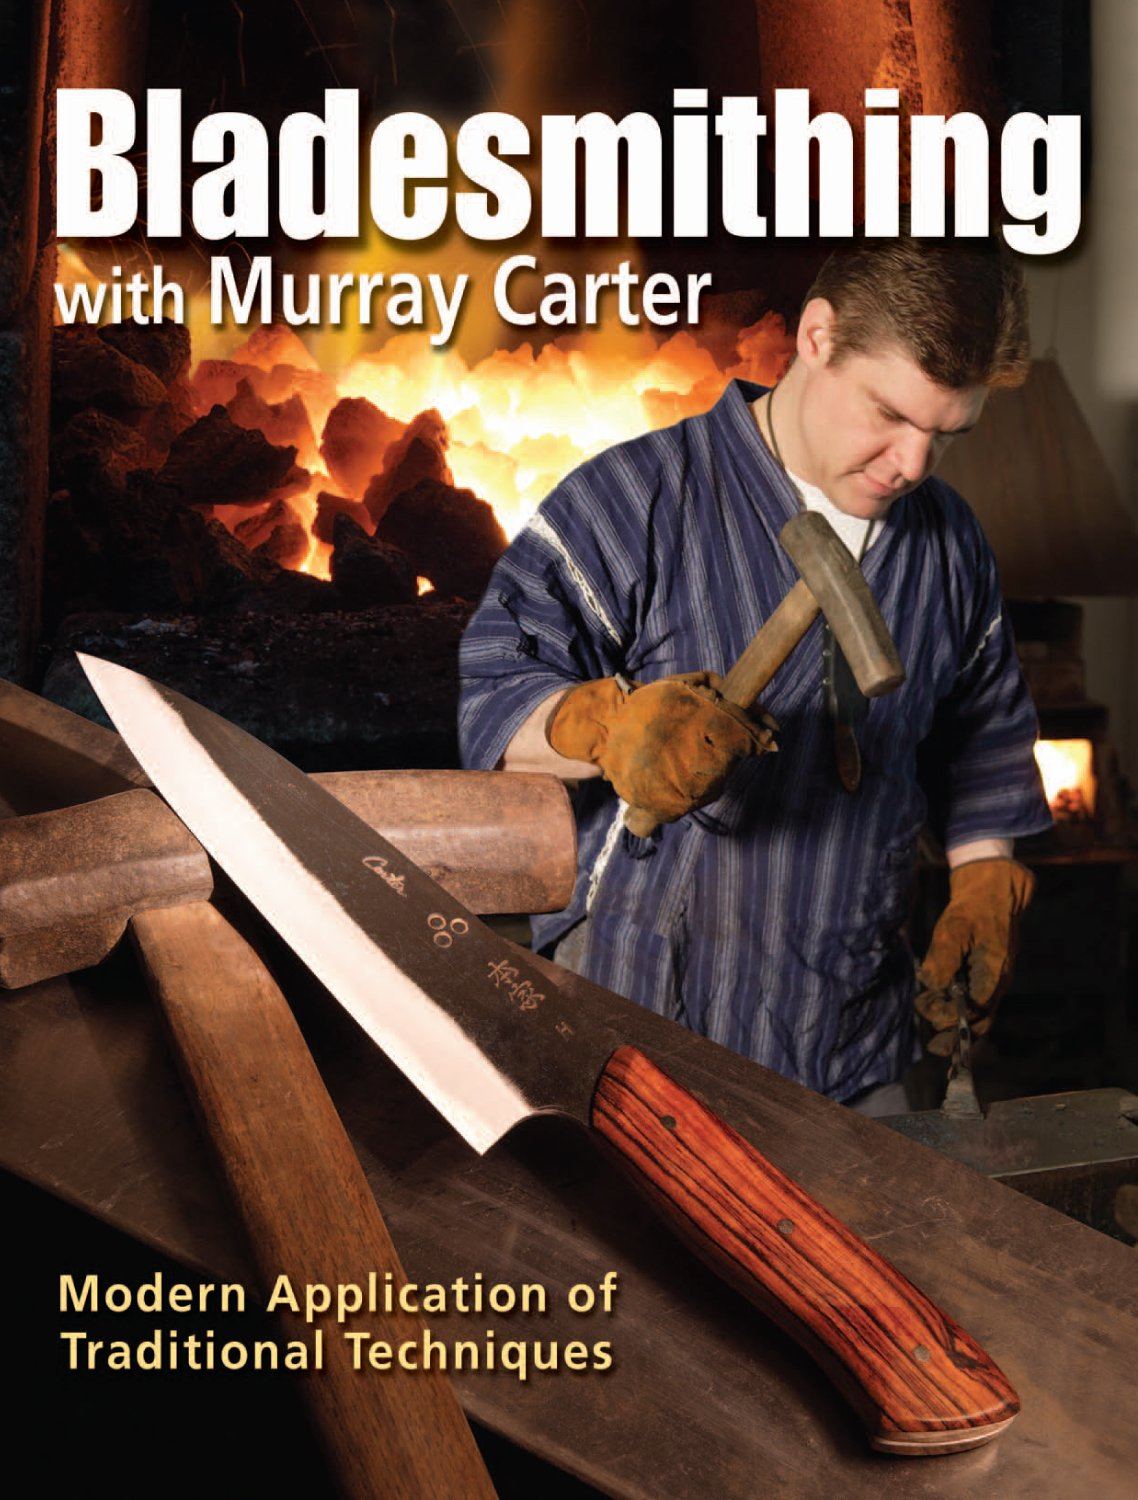 Amazon.com: Bladesmithing with Murray Carter: Modern Application of  Traditional Techniques (0074962013811): Murray Carter: Books